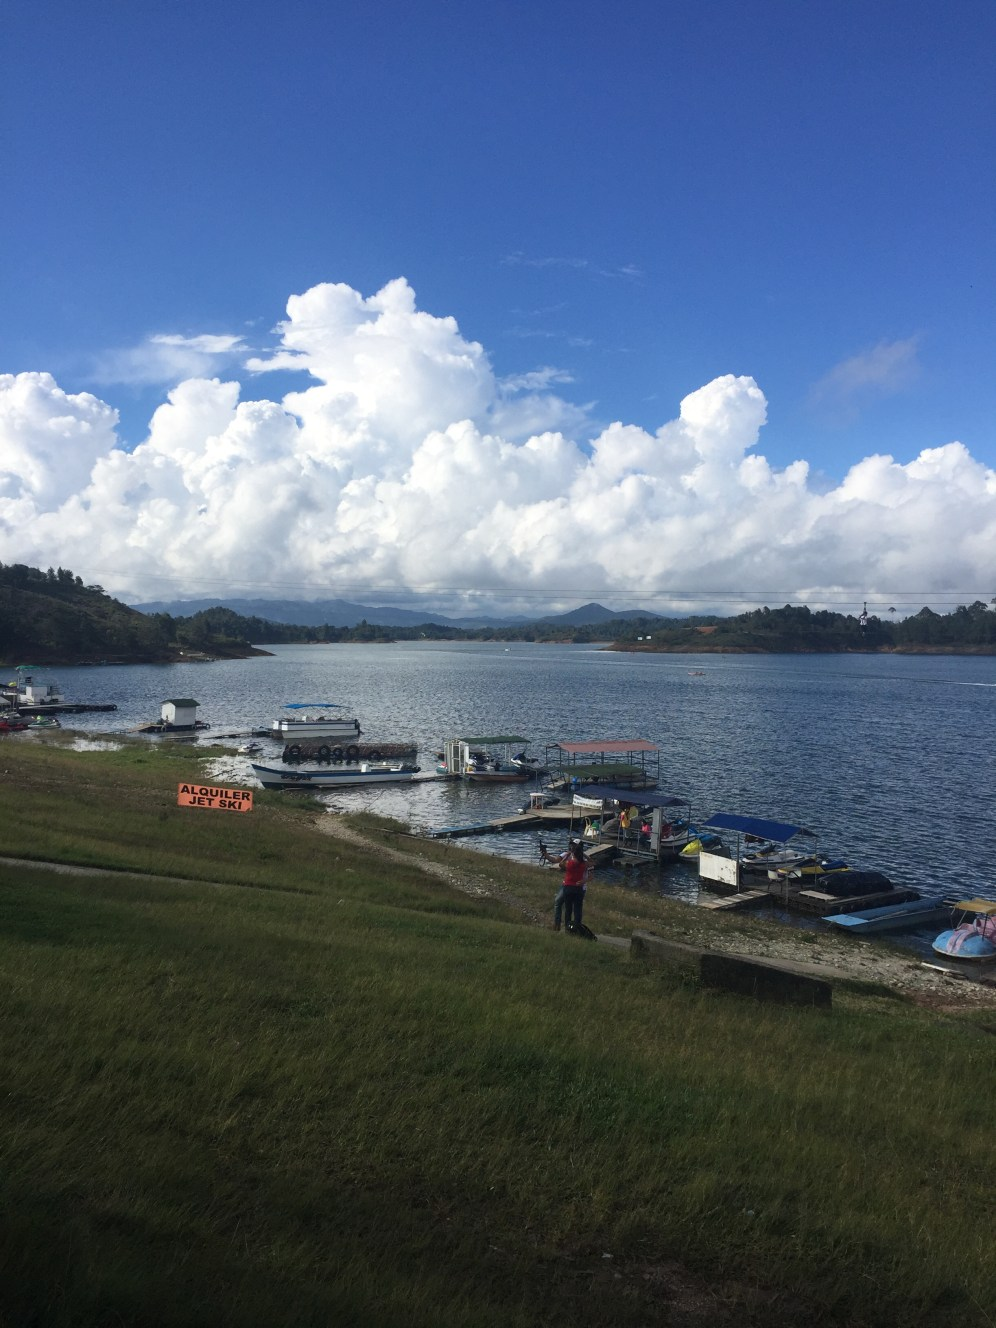 Lakeshore in Guatapé. Lots of boats and water activity and even a zipline.